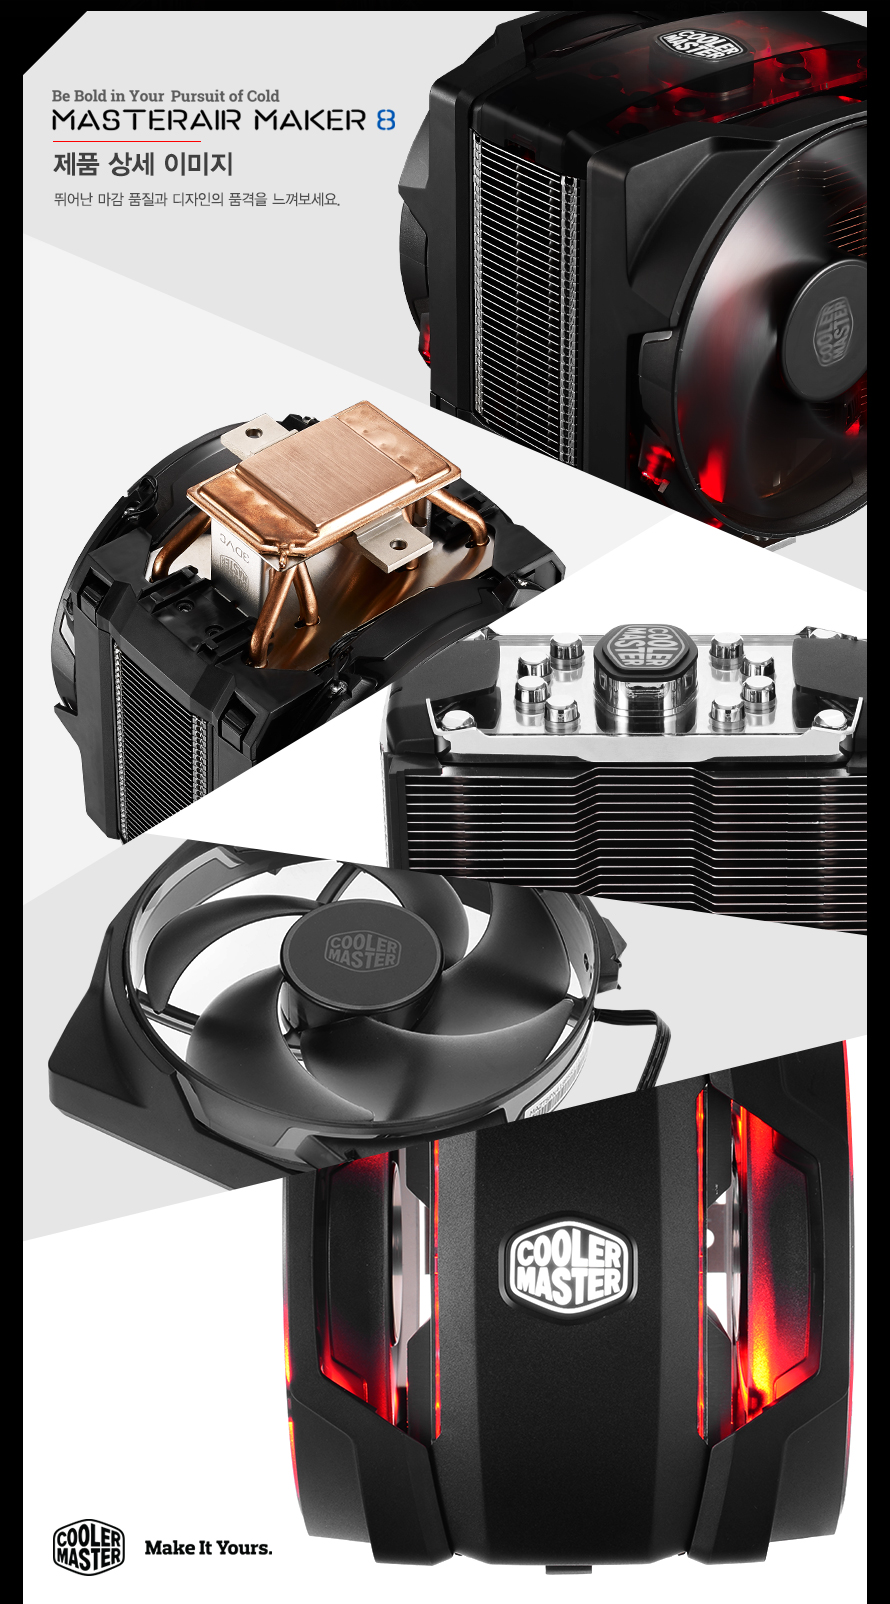 Cooler Master Masterair Maker 8 Air